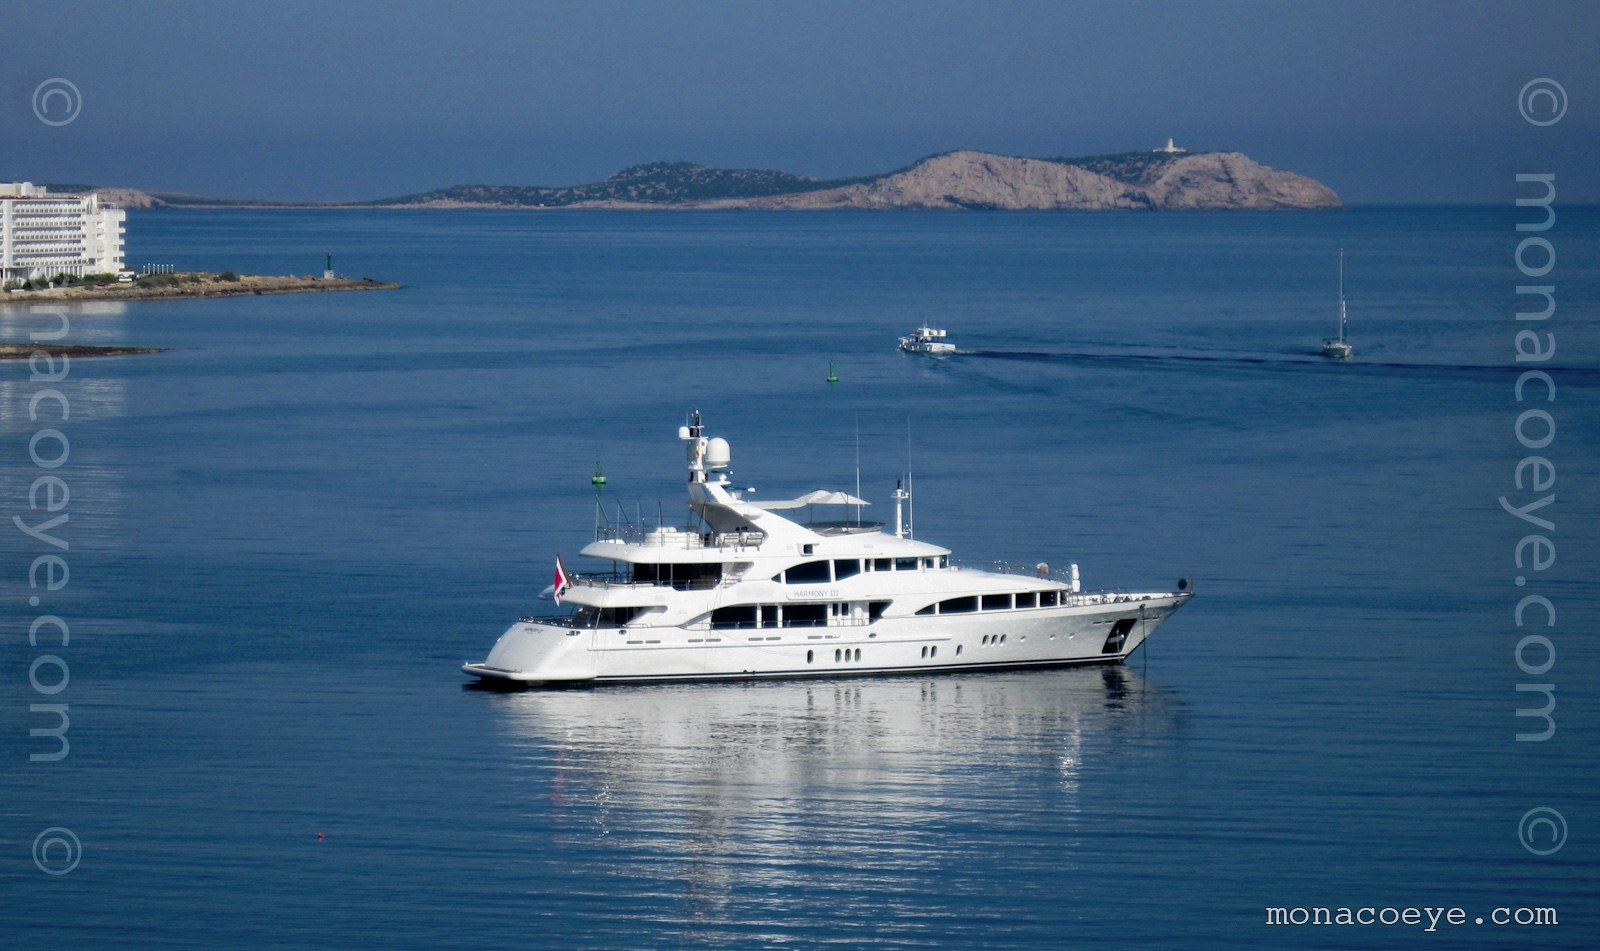 Harmony III. Eighth in the 145 foot Benetti Vision series